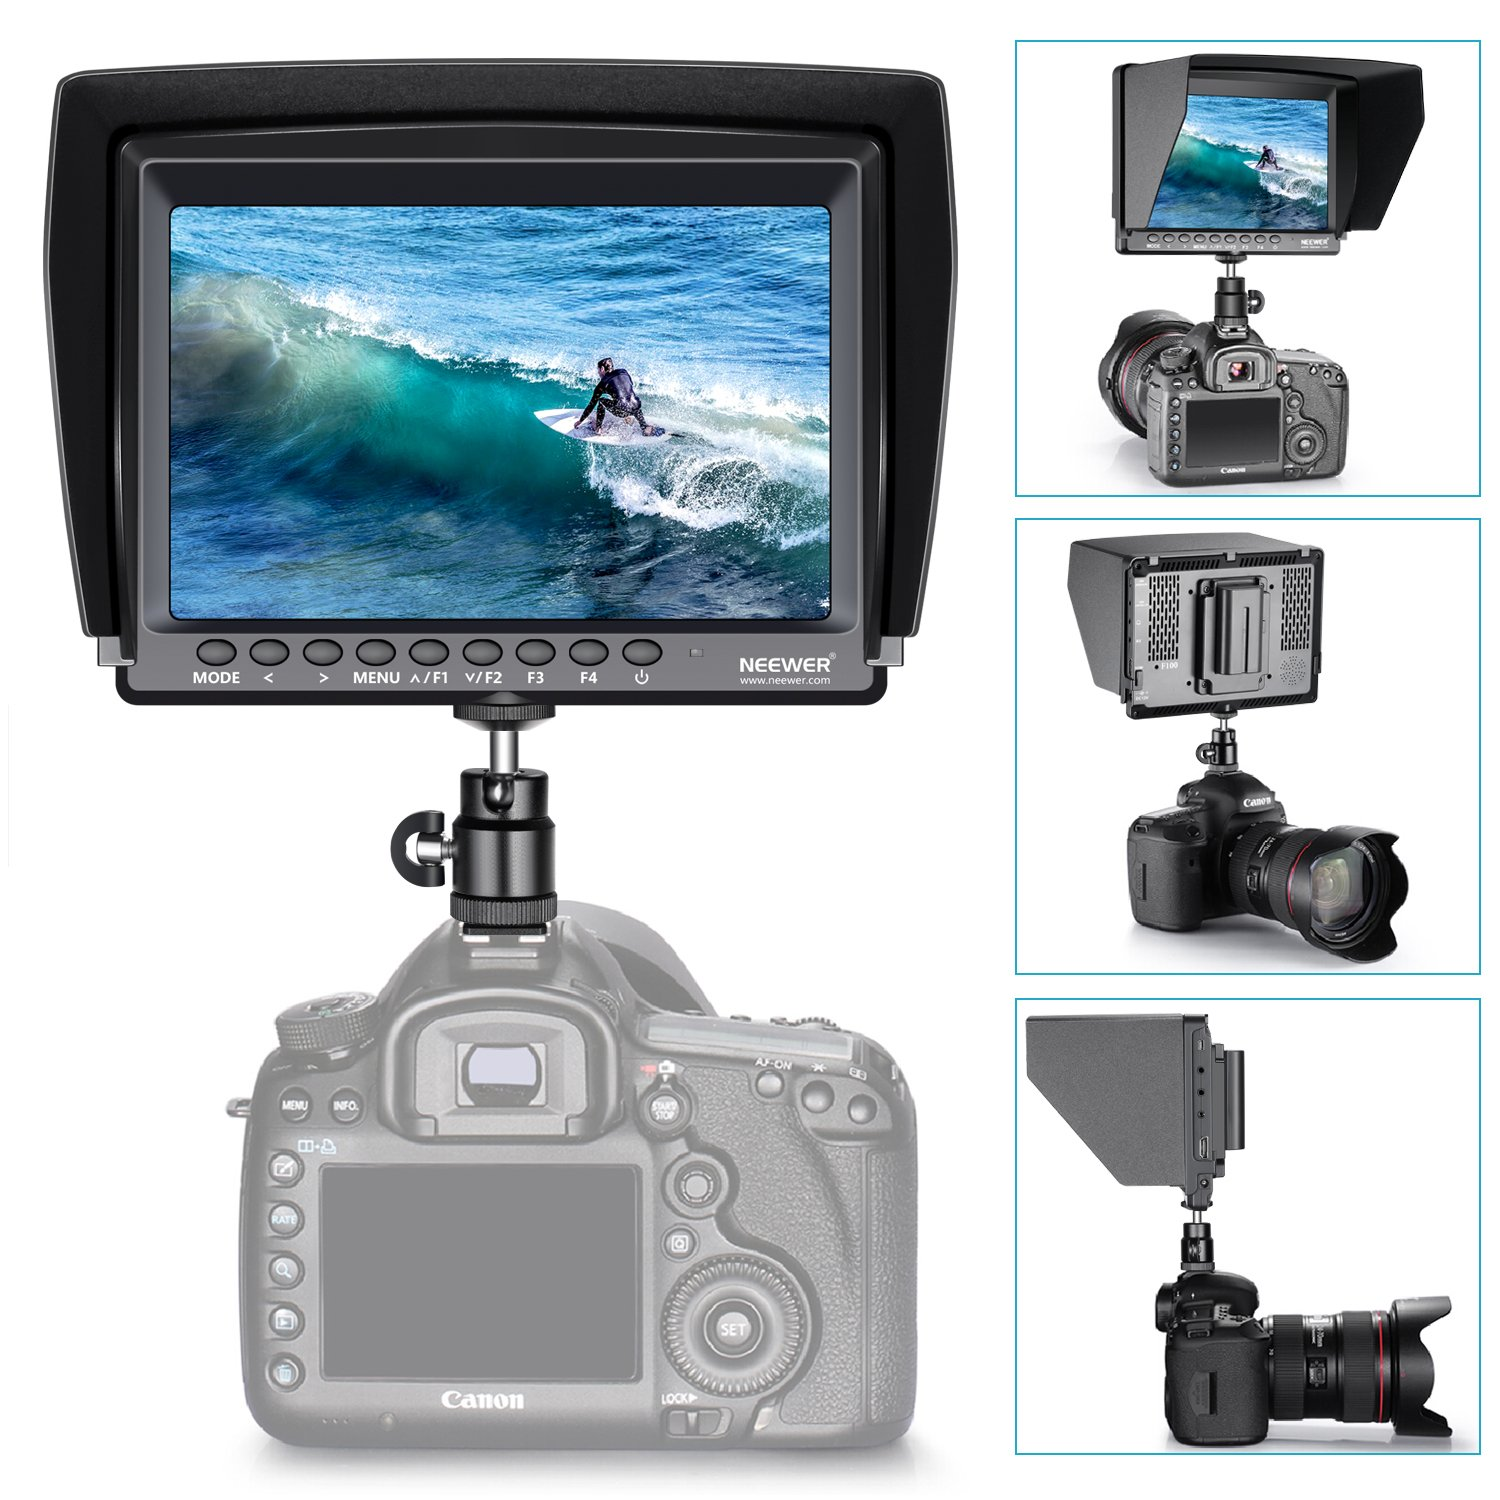 Neewer F100 7-inch 1280x800 IPS Screen Camera Field Monitor Kit: Support 4k input with 2600mAh Rechargeable Li-ion Battery, USB Battery Charger and 11.8-inch Magic Arm for DSLR Camera/Camcorder by Neewer (Image #4)